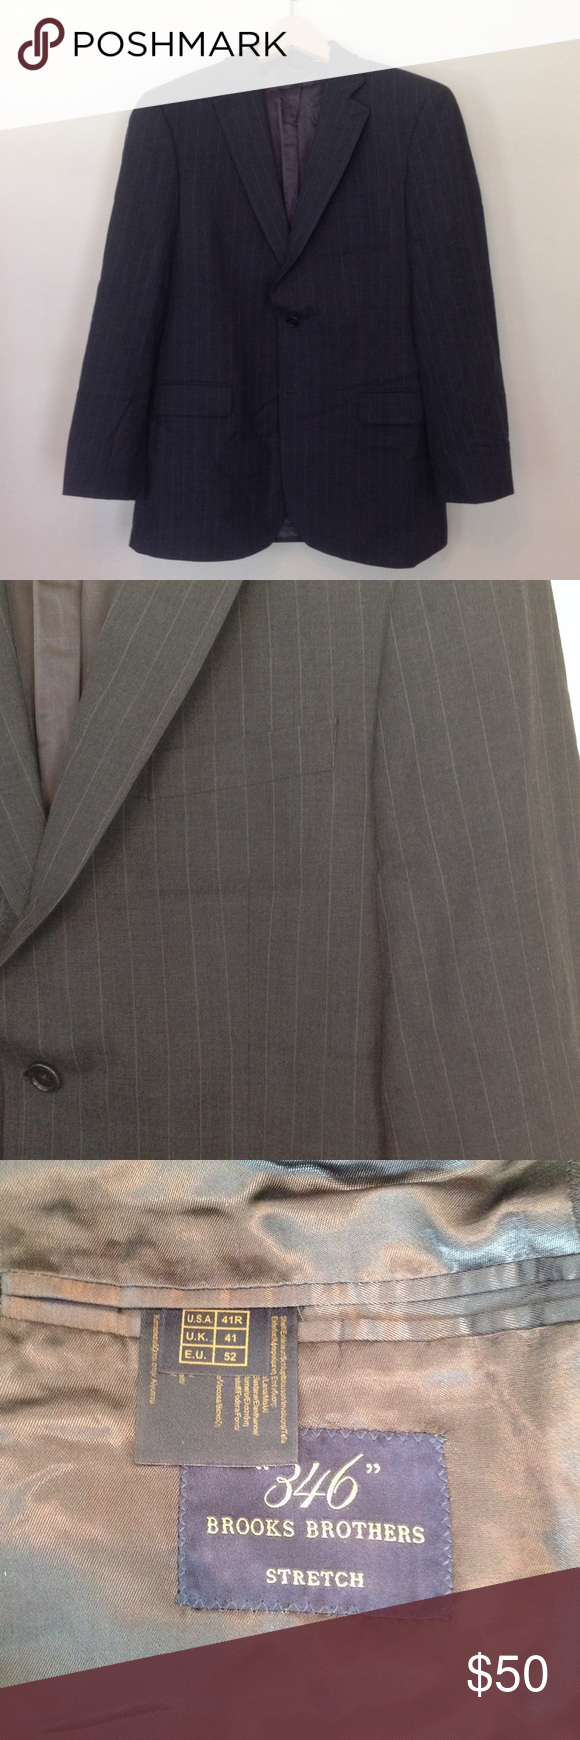 Brooks Brother suit Grey pinstriped Brooks Brothers suit. 41 R 2 button jacket. Pants are 36/31 with flat front. It is Brooks Brothers 346 stretch collection. Brooks Brothers Suits & Blazers Suits